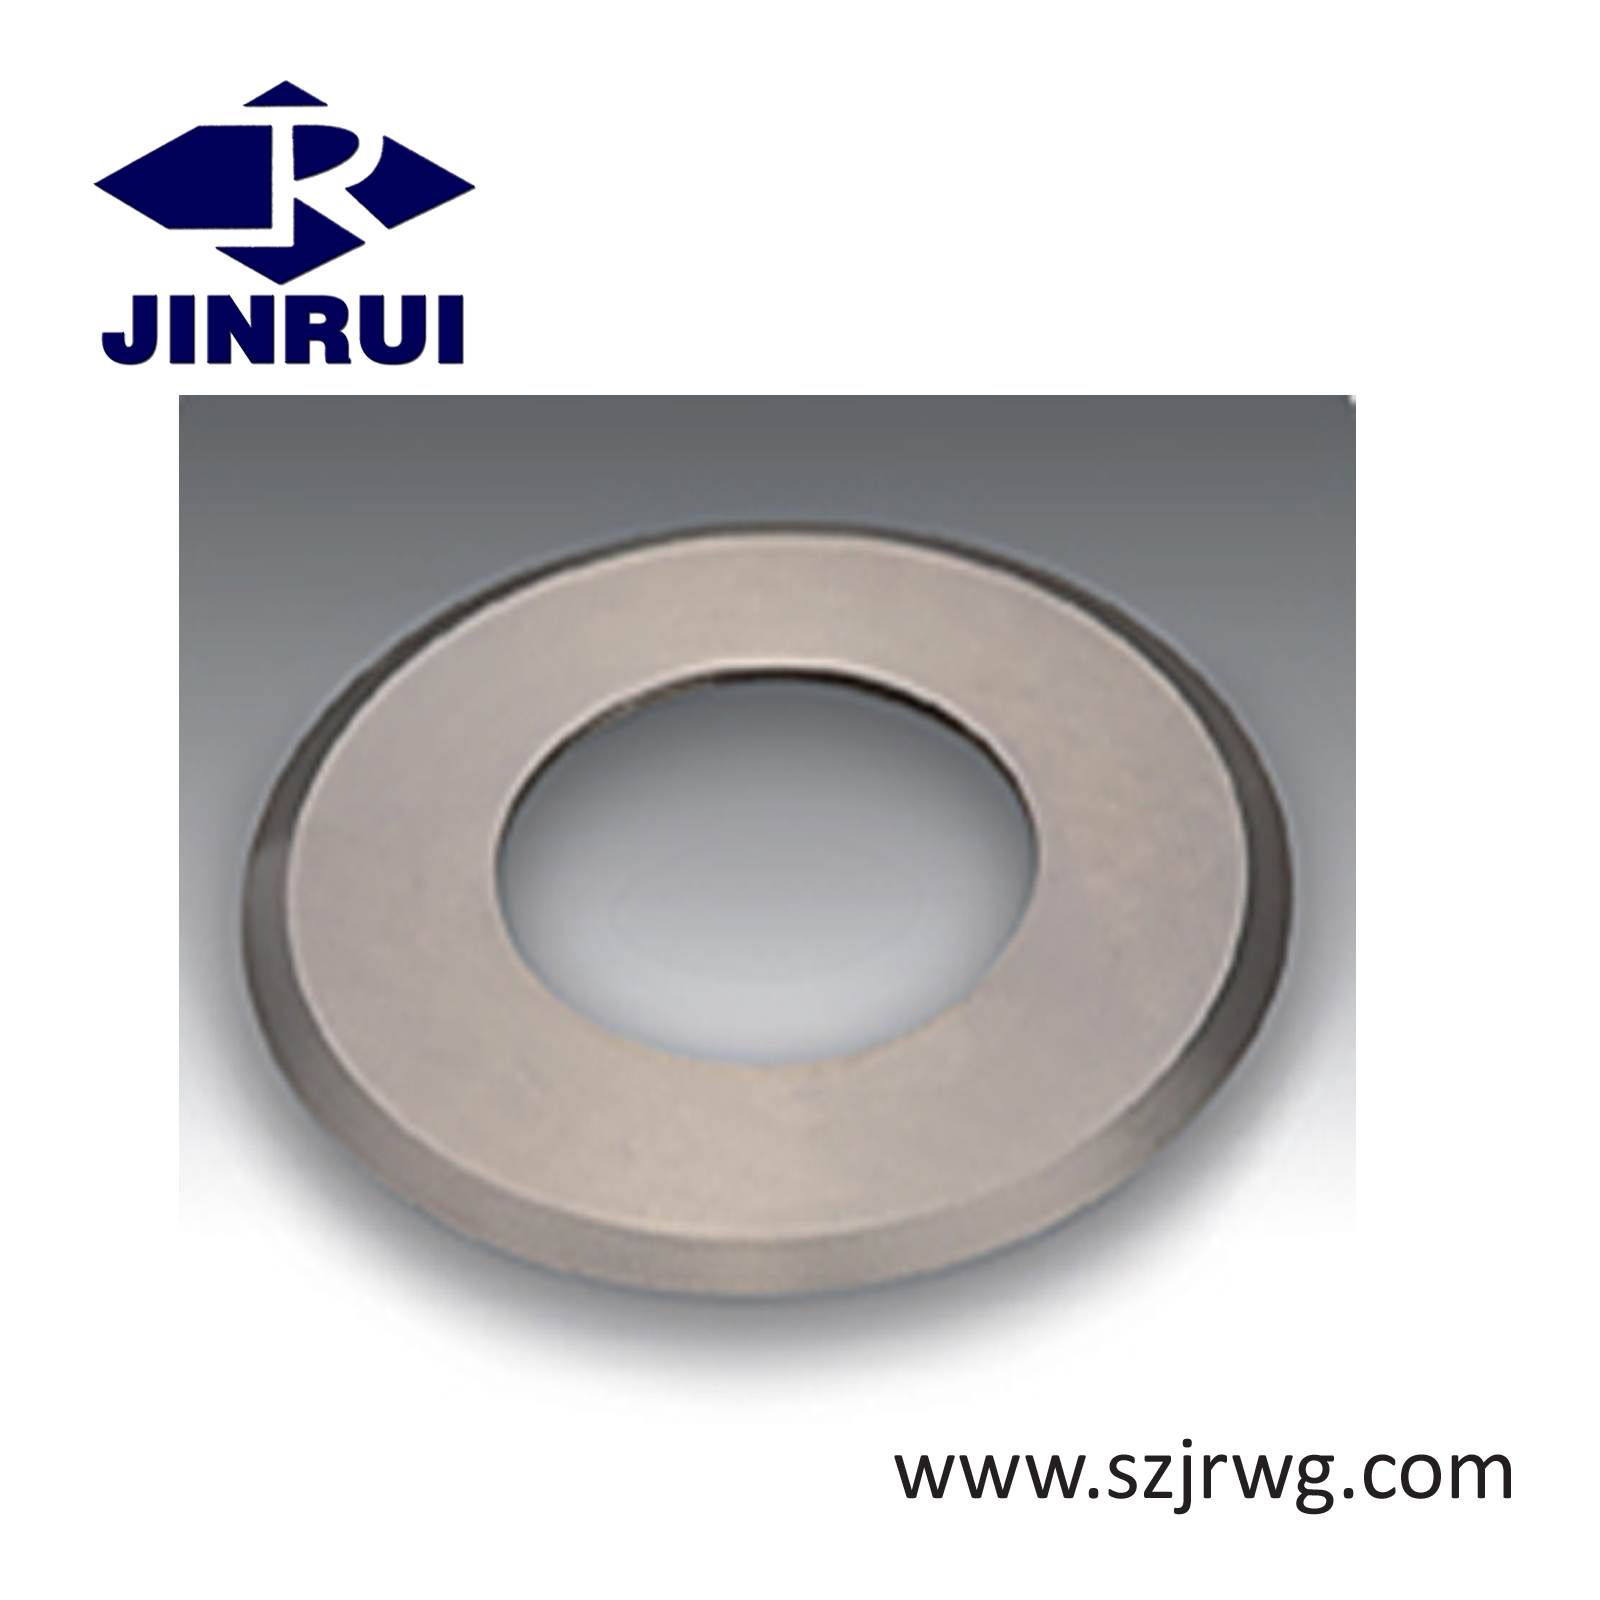 Solid Carbide Disc Cutter for Copper/Suitable for processing copper,stainless and ordinary steel